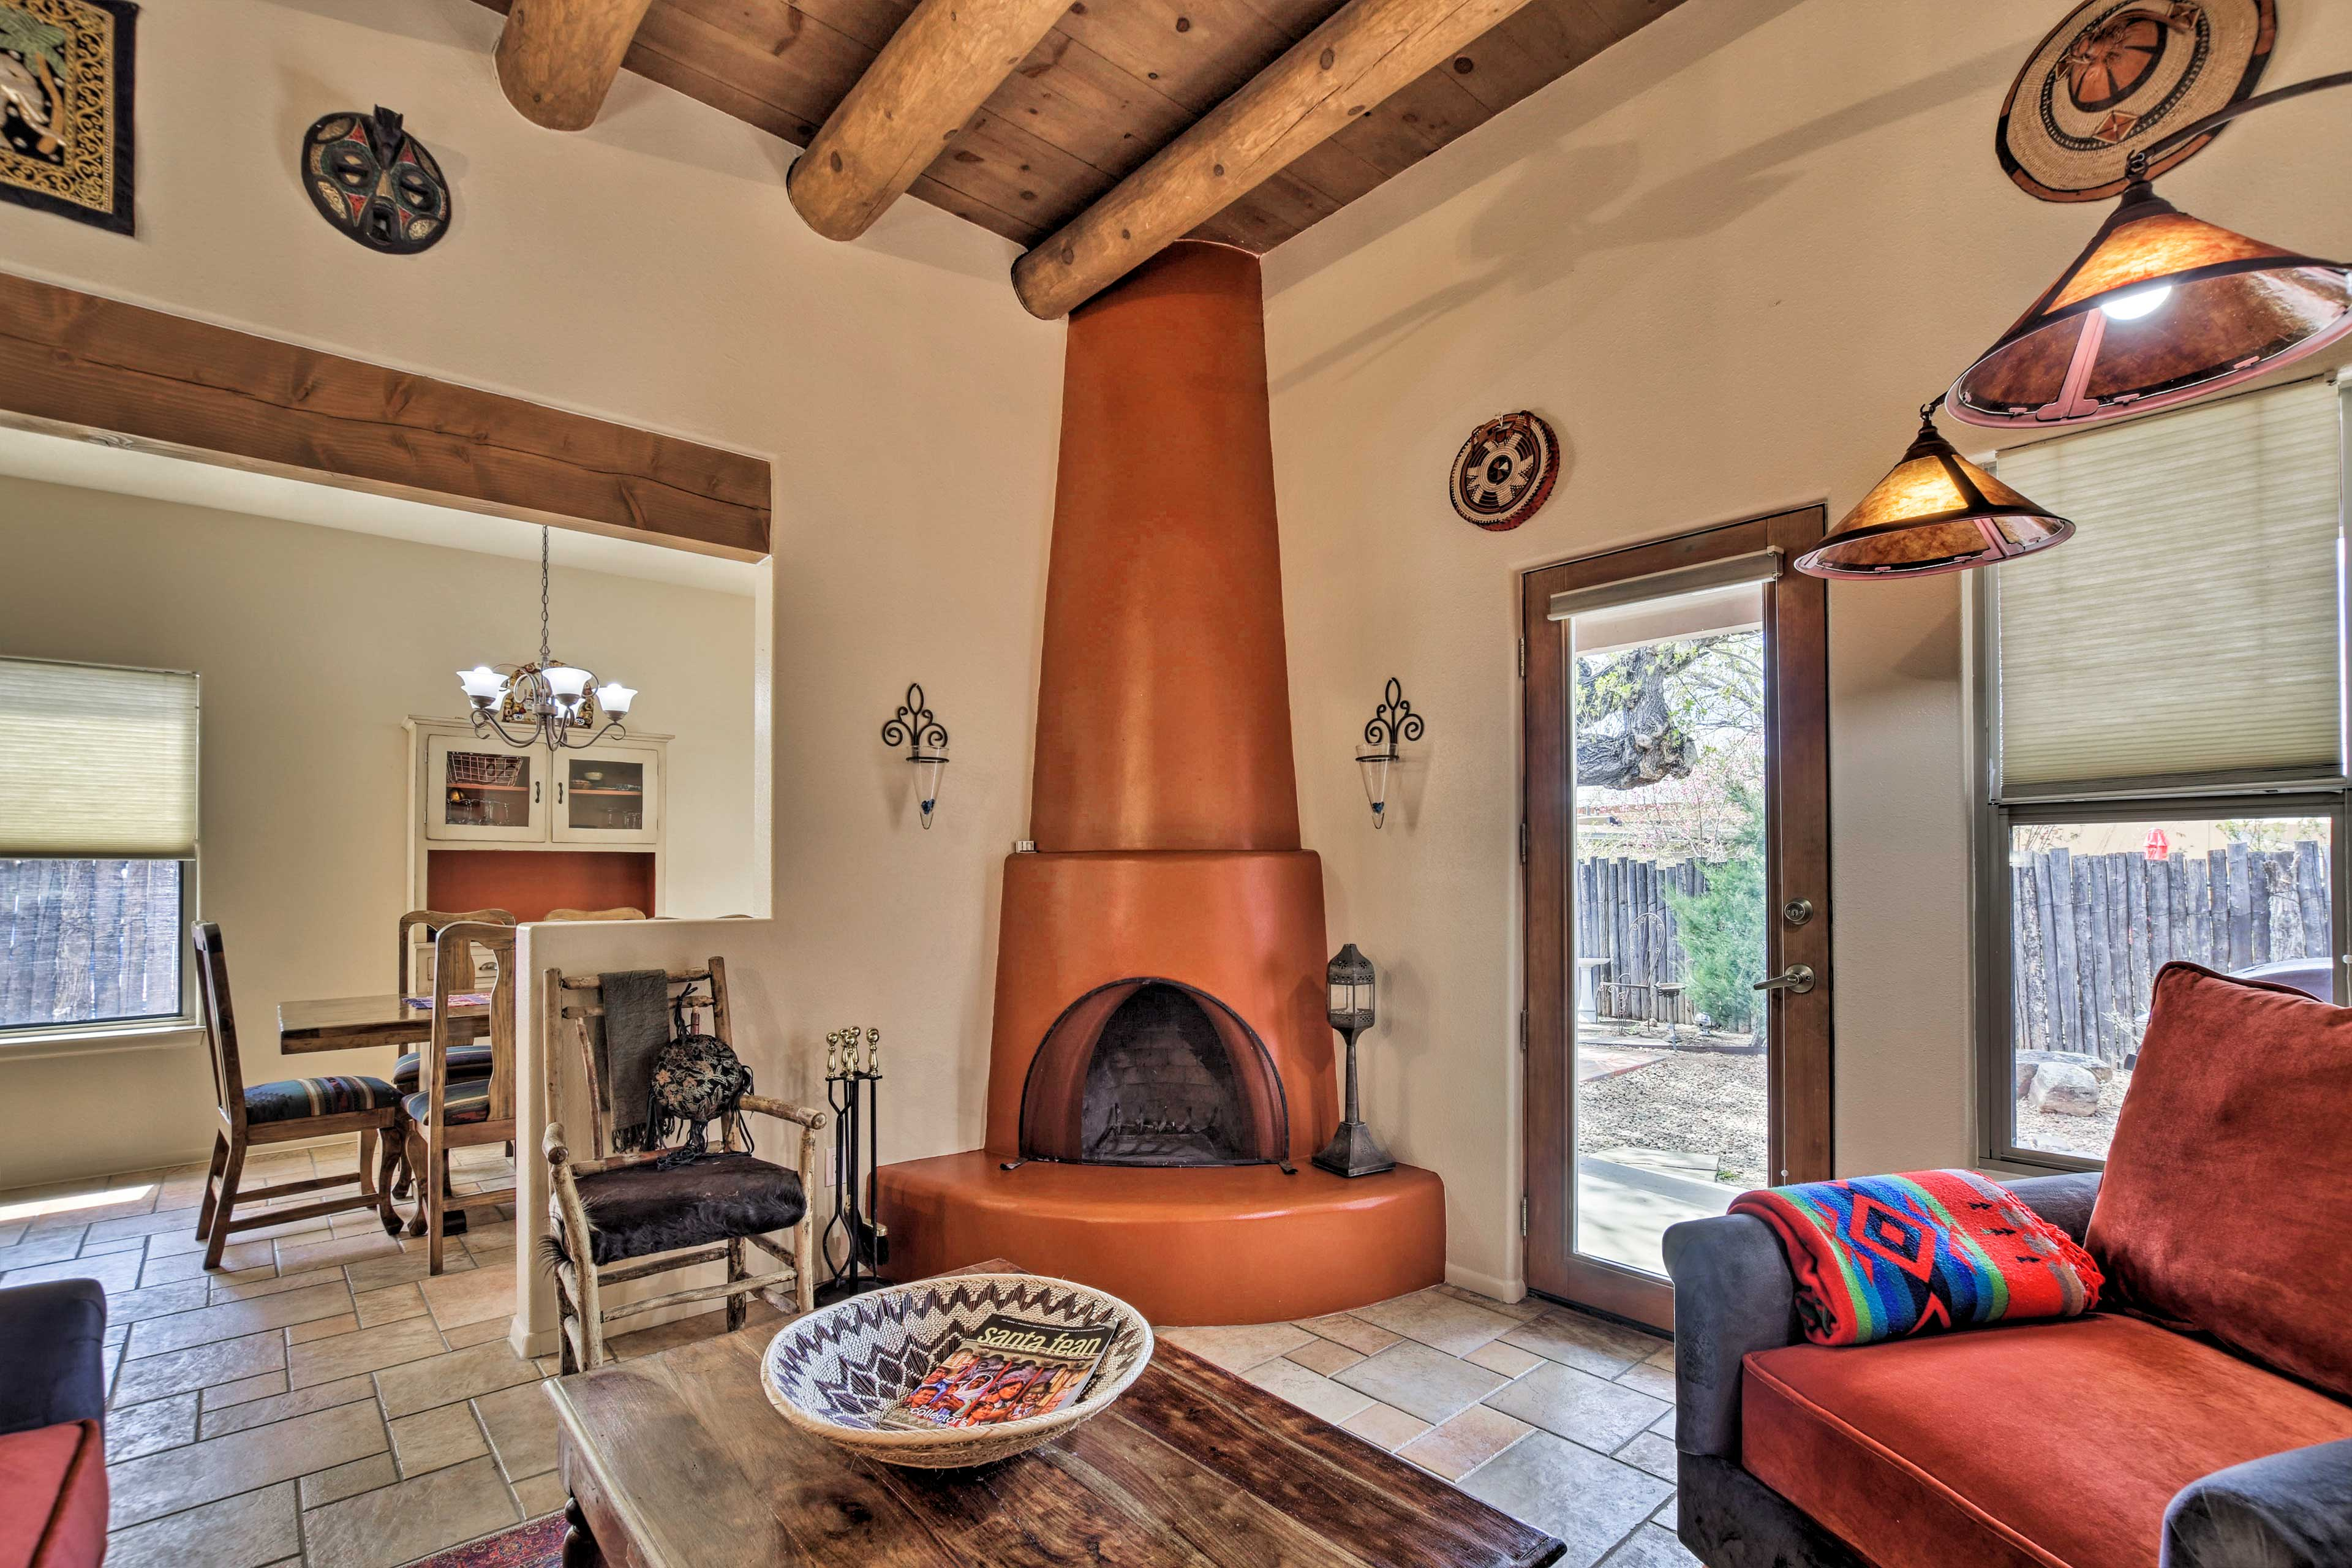 You'll be treated to great amenities such as this wood-burning fireplace.